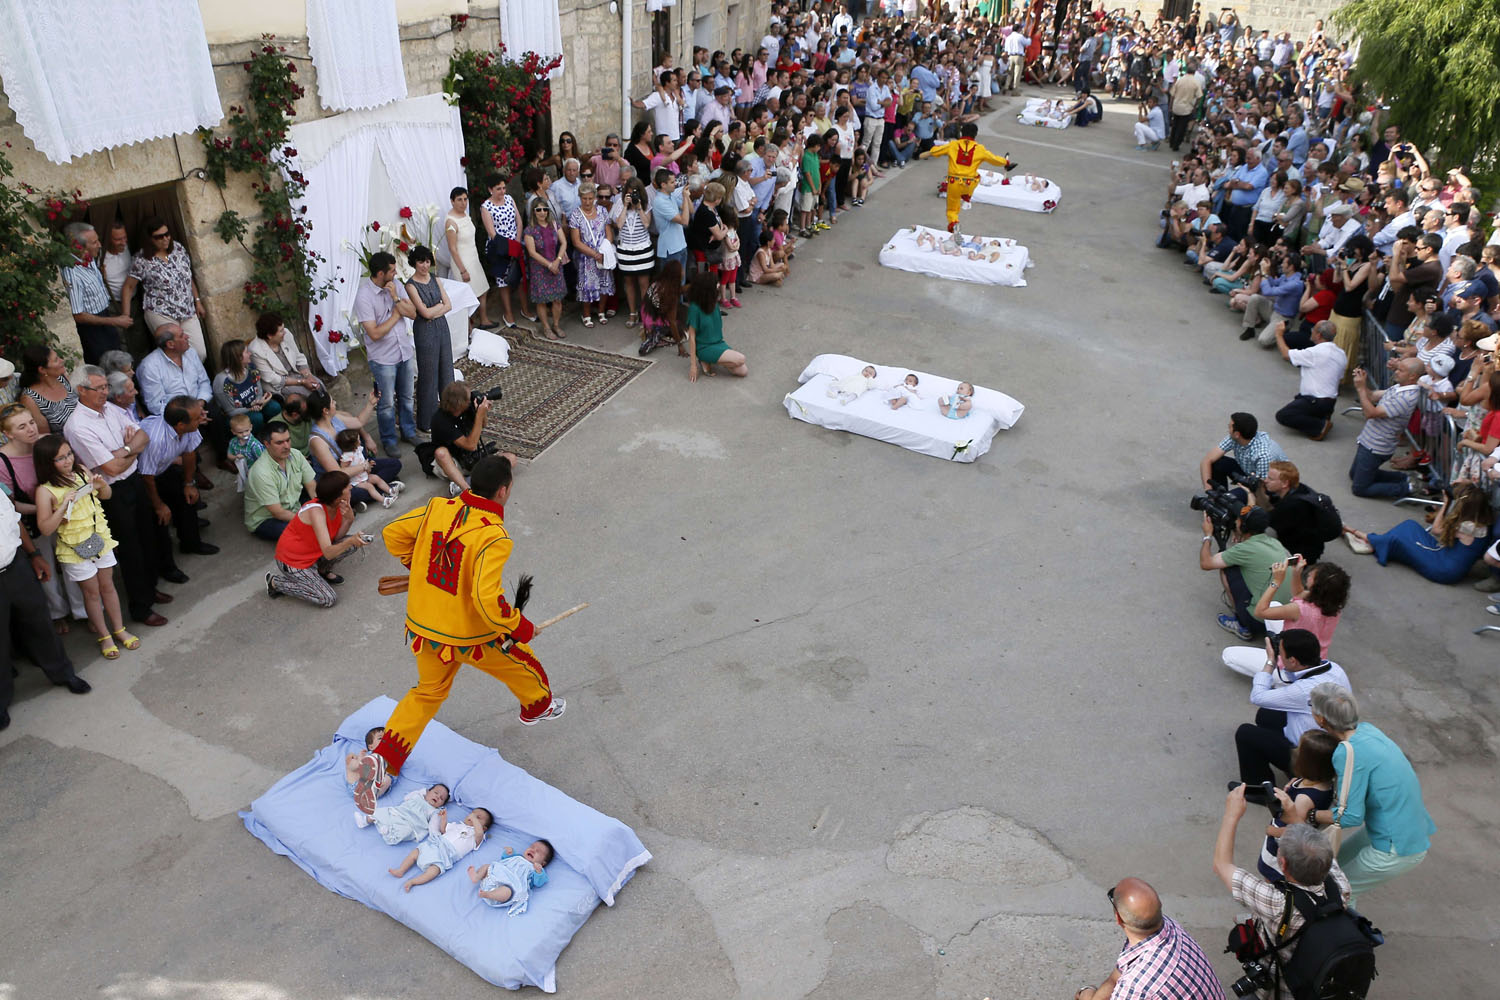 Jun. 22, 2014. A man dressed up as the devil jumps over babies lying on a mattress in the street during 'El Colacho', the 'baby jumping festival' in the village of Castrillo de Murcia, near Burgos.